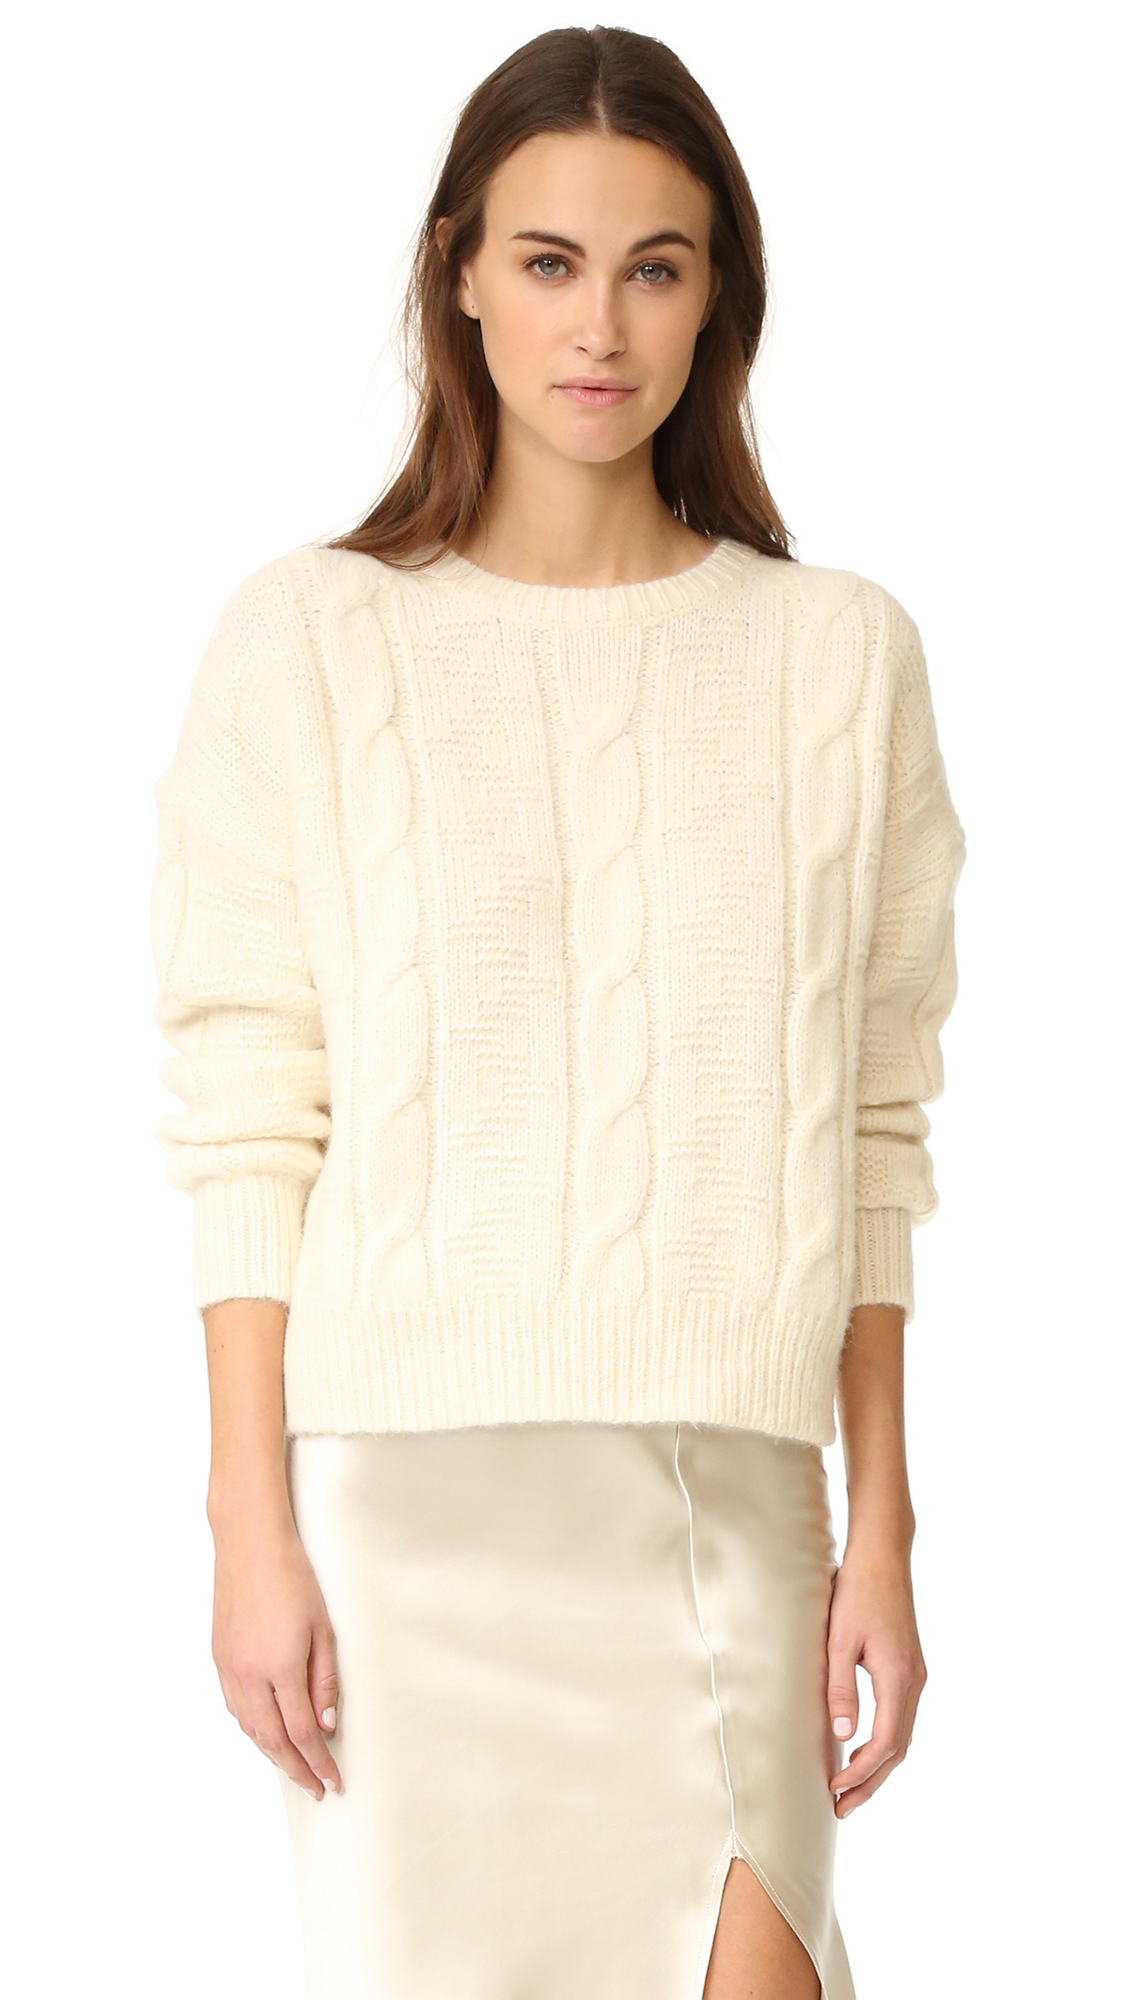 Vertical cables and raised stitches bring cozy texture to this plush Nili Lotan sweater. Dropped shoulder seams relax the boxy shape. Crew neckline. Long sleeves. Fabric: Soft cable knit. 68% alpaca/22% polyamide/10% wool. Dry clean. Imported, China.